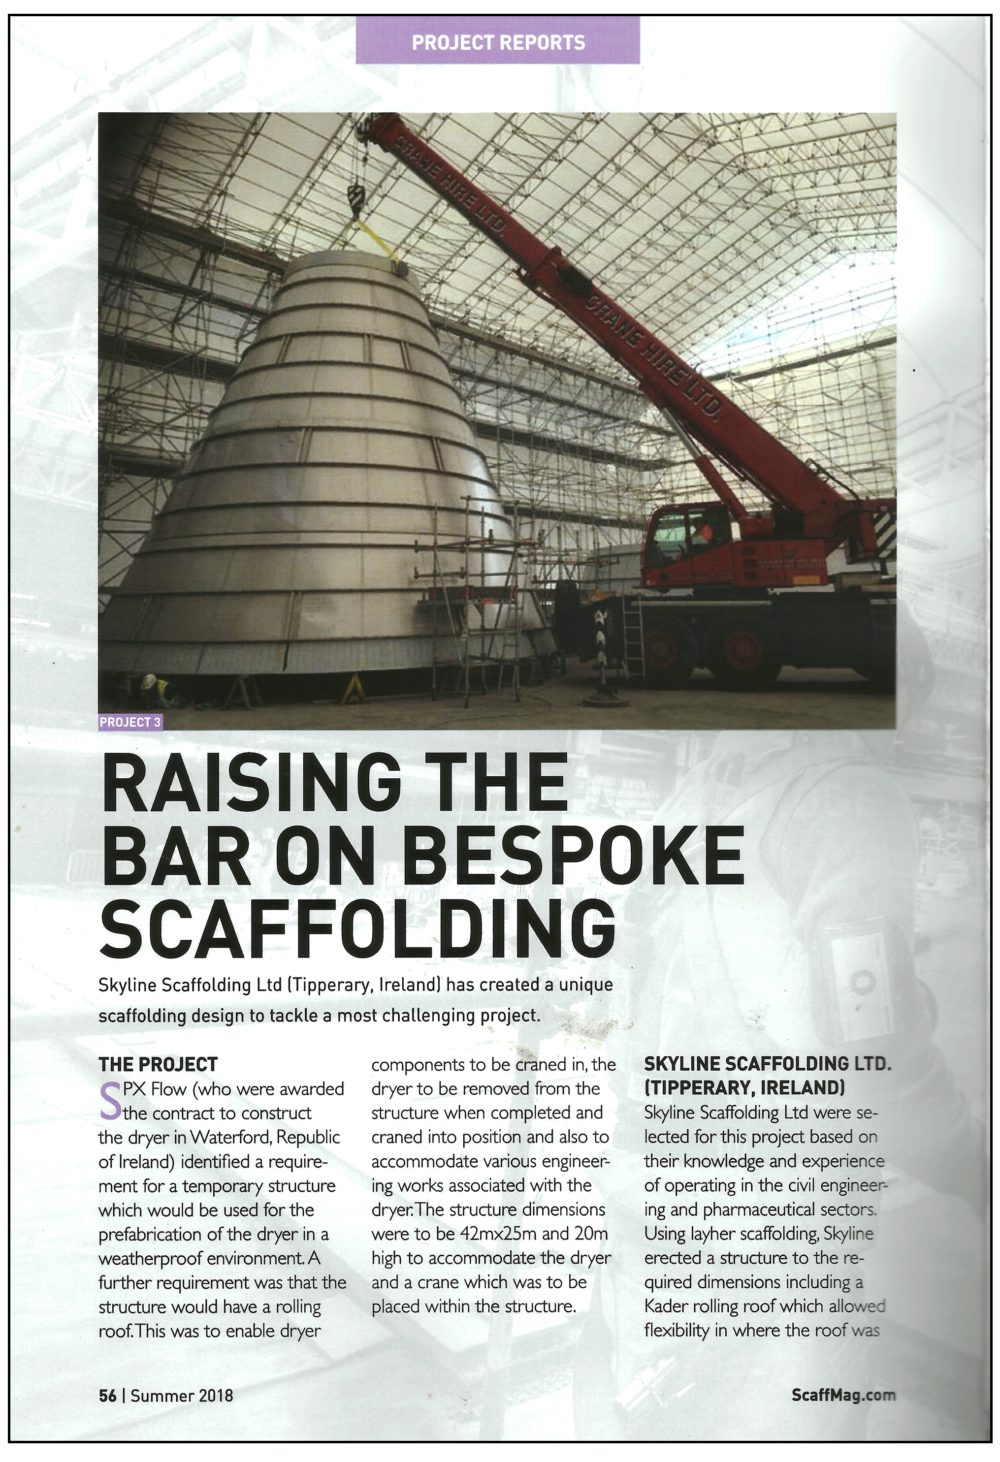 Skyline Scaffolding article ScaffMag 2018 page 1